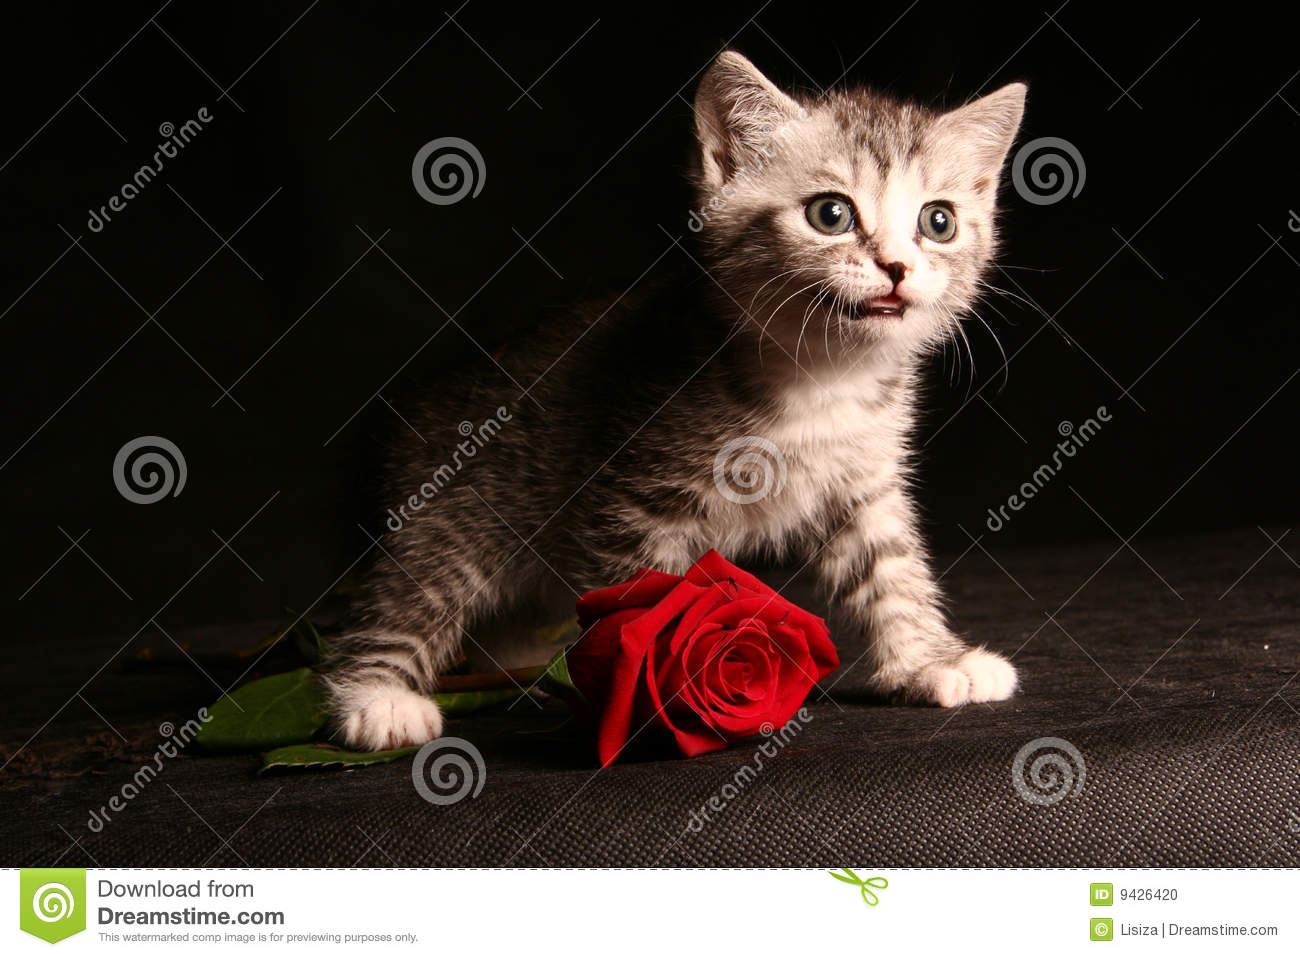 3d Cat Wallpapers Download Little Cat With Red Rose Stock Photo Image 9426420